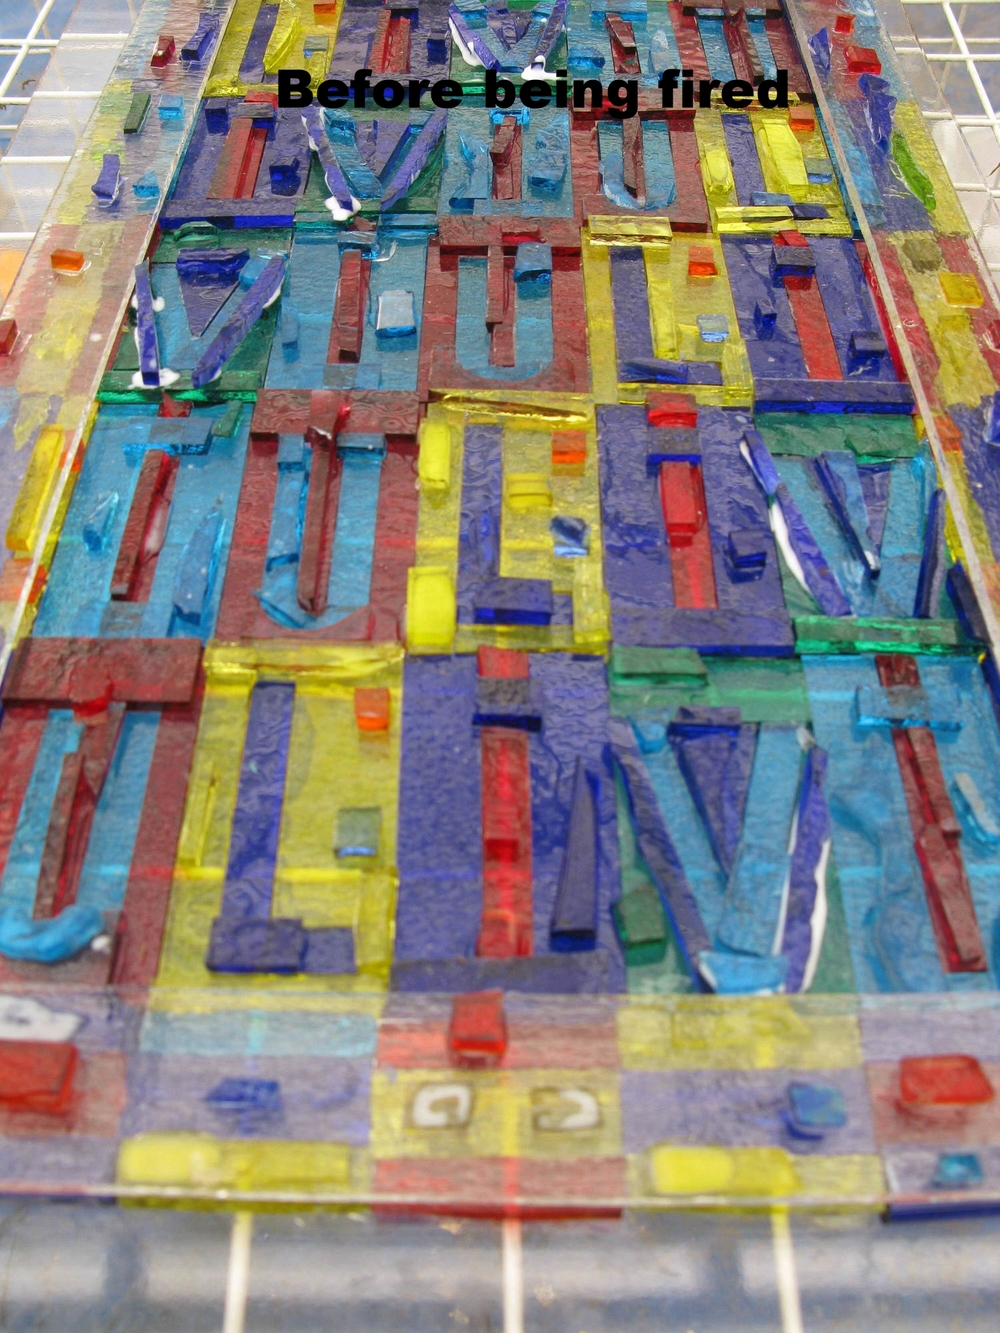 Play on the letters 'Liviu,' which are rotated around.  The glass before being fired.   You would not want to leave the glass as is because it would not permanently adhere to the base white glass it is on.  2010  Fused glass.